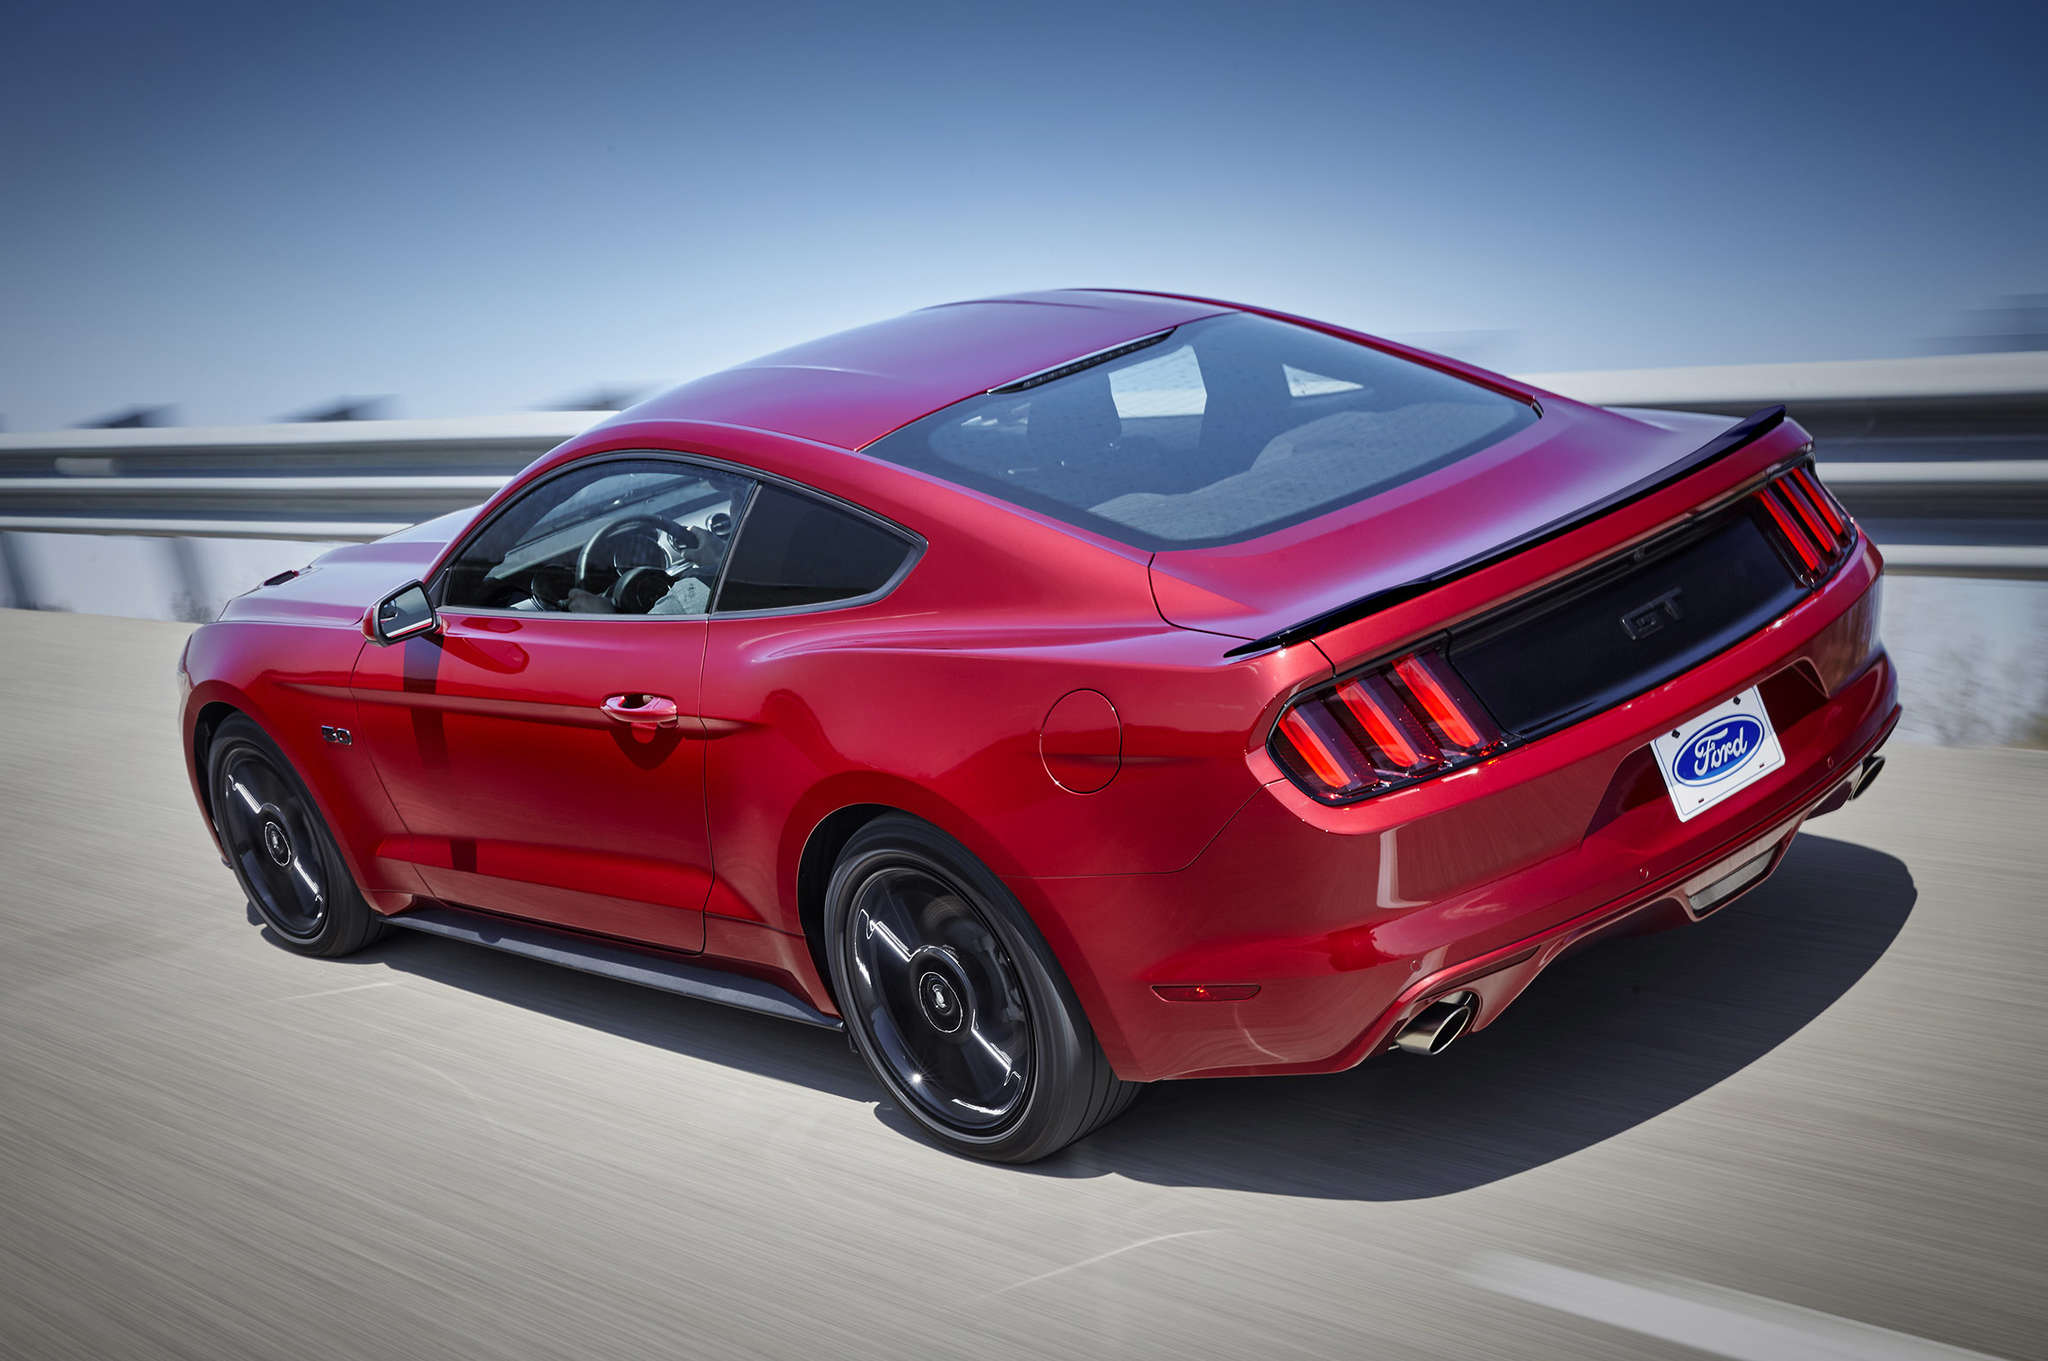 The 2016 Mustang: Superb handling, terrific sound, but a worrisome reliability rating.